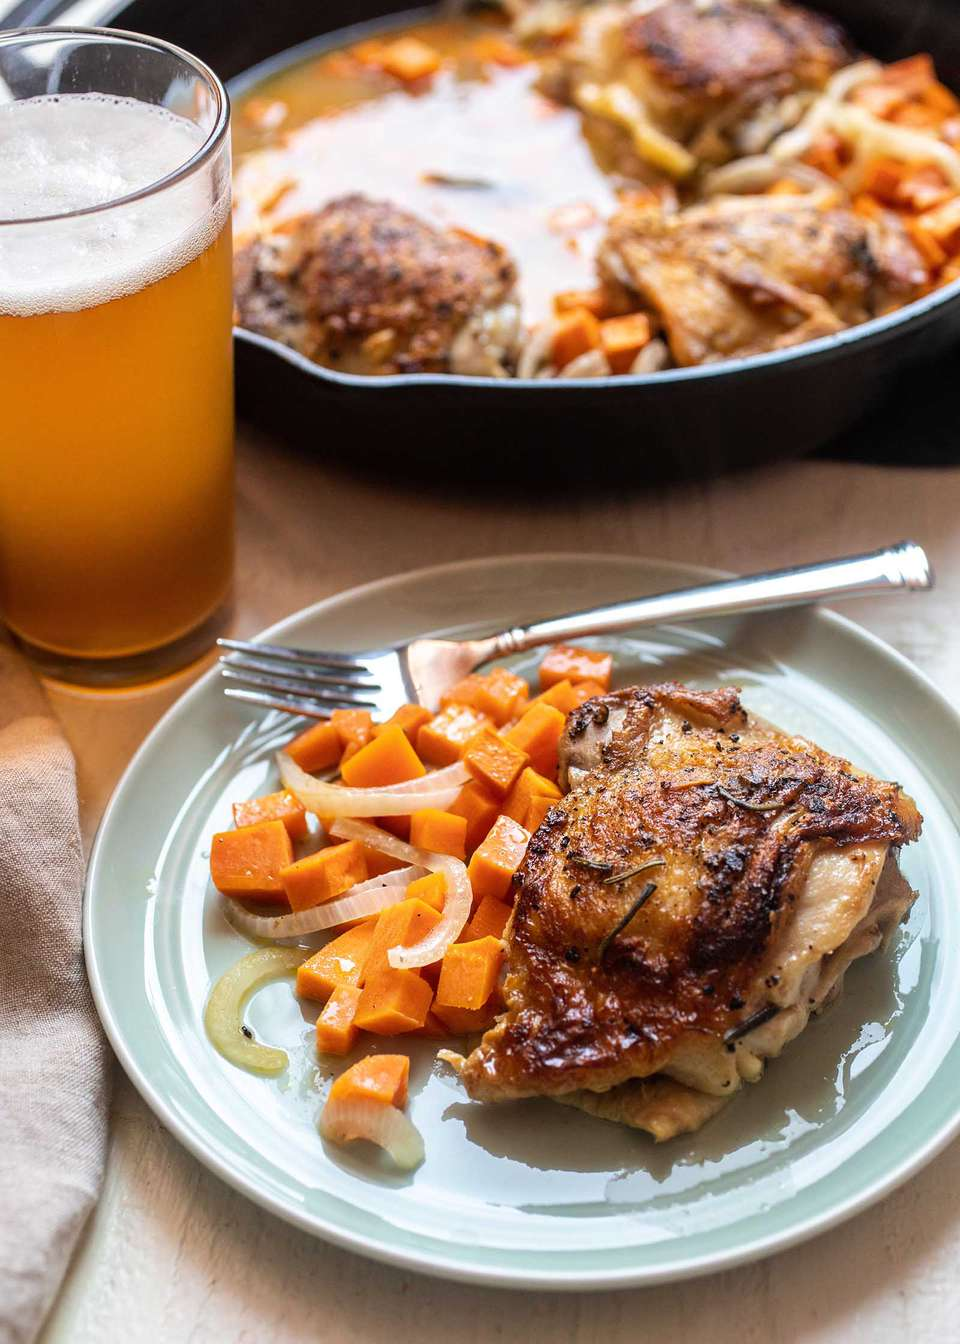 Weeknight one-pot skillet dinner cider-braised chicken thighs with sweet potatoes